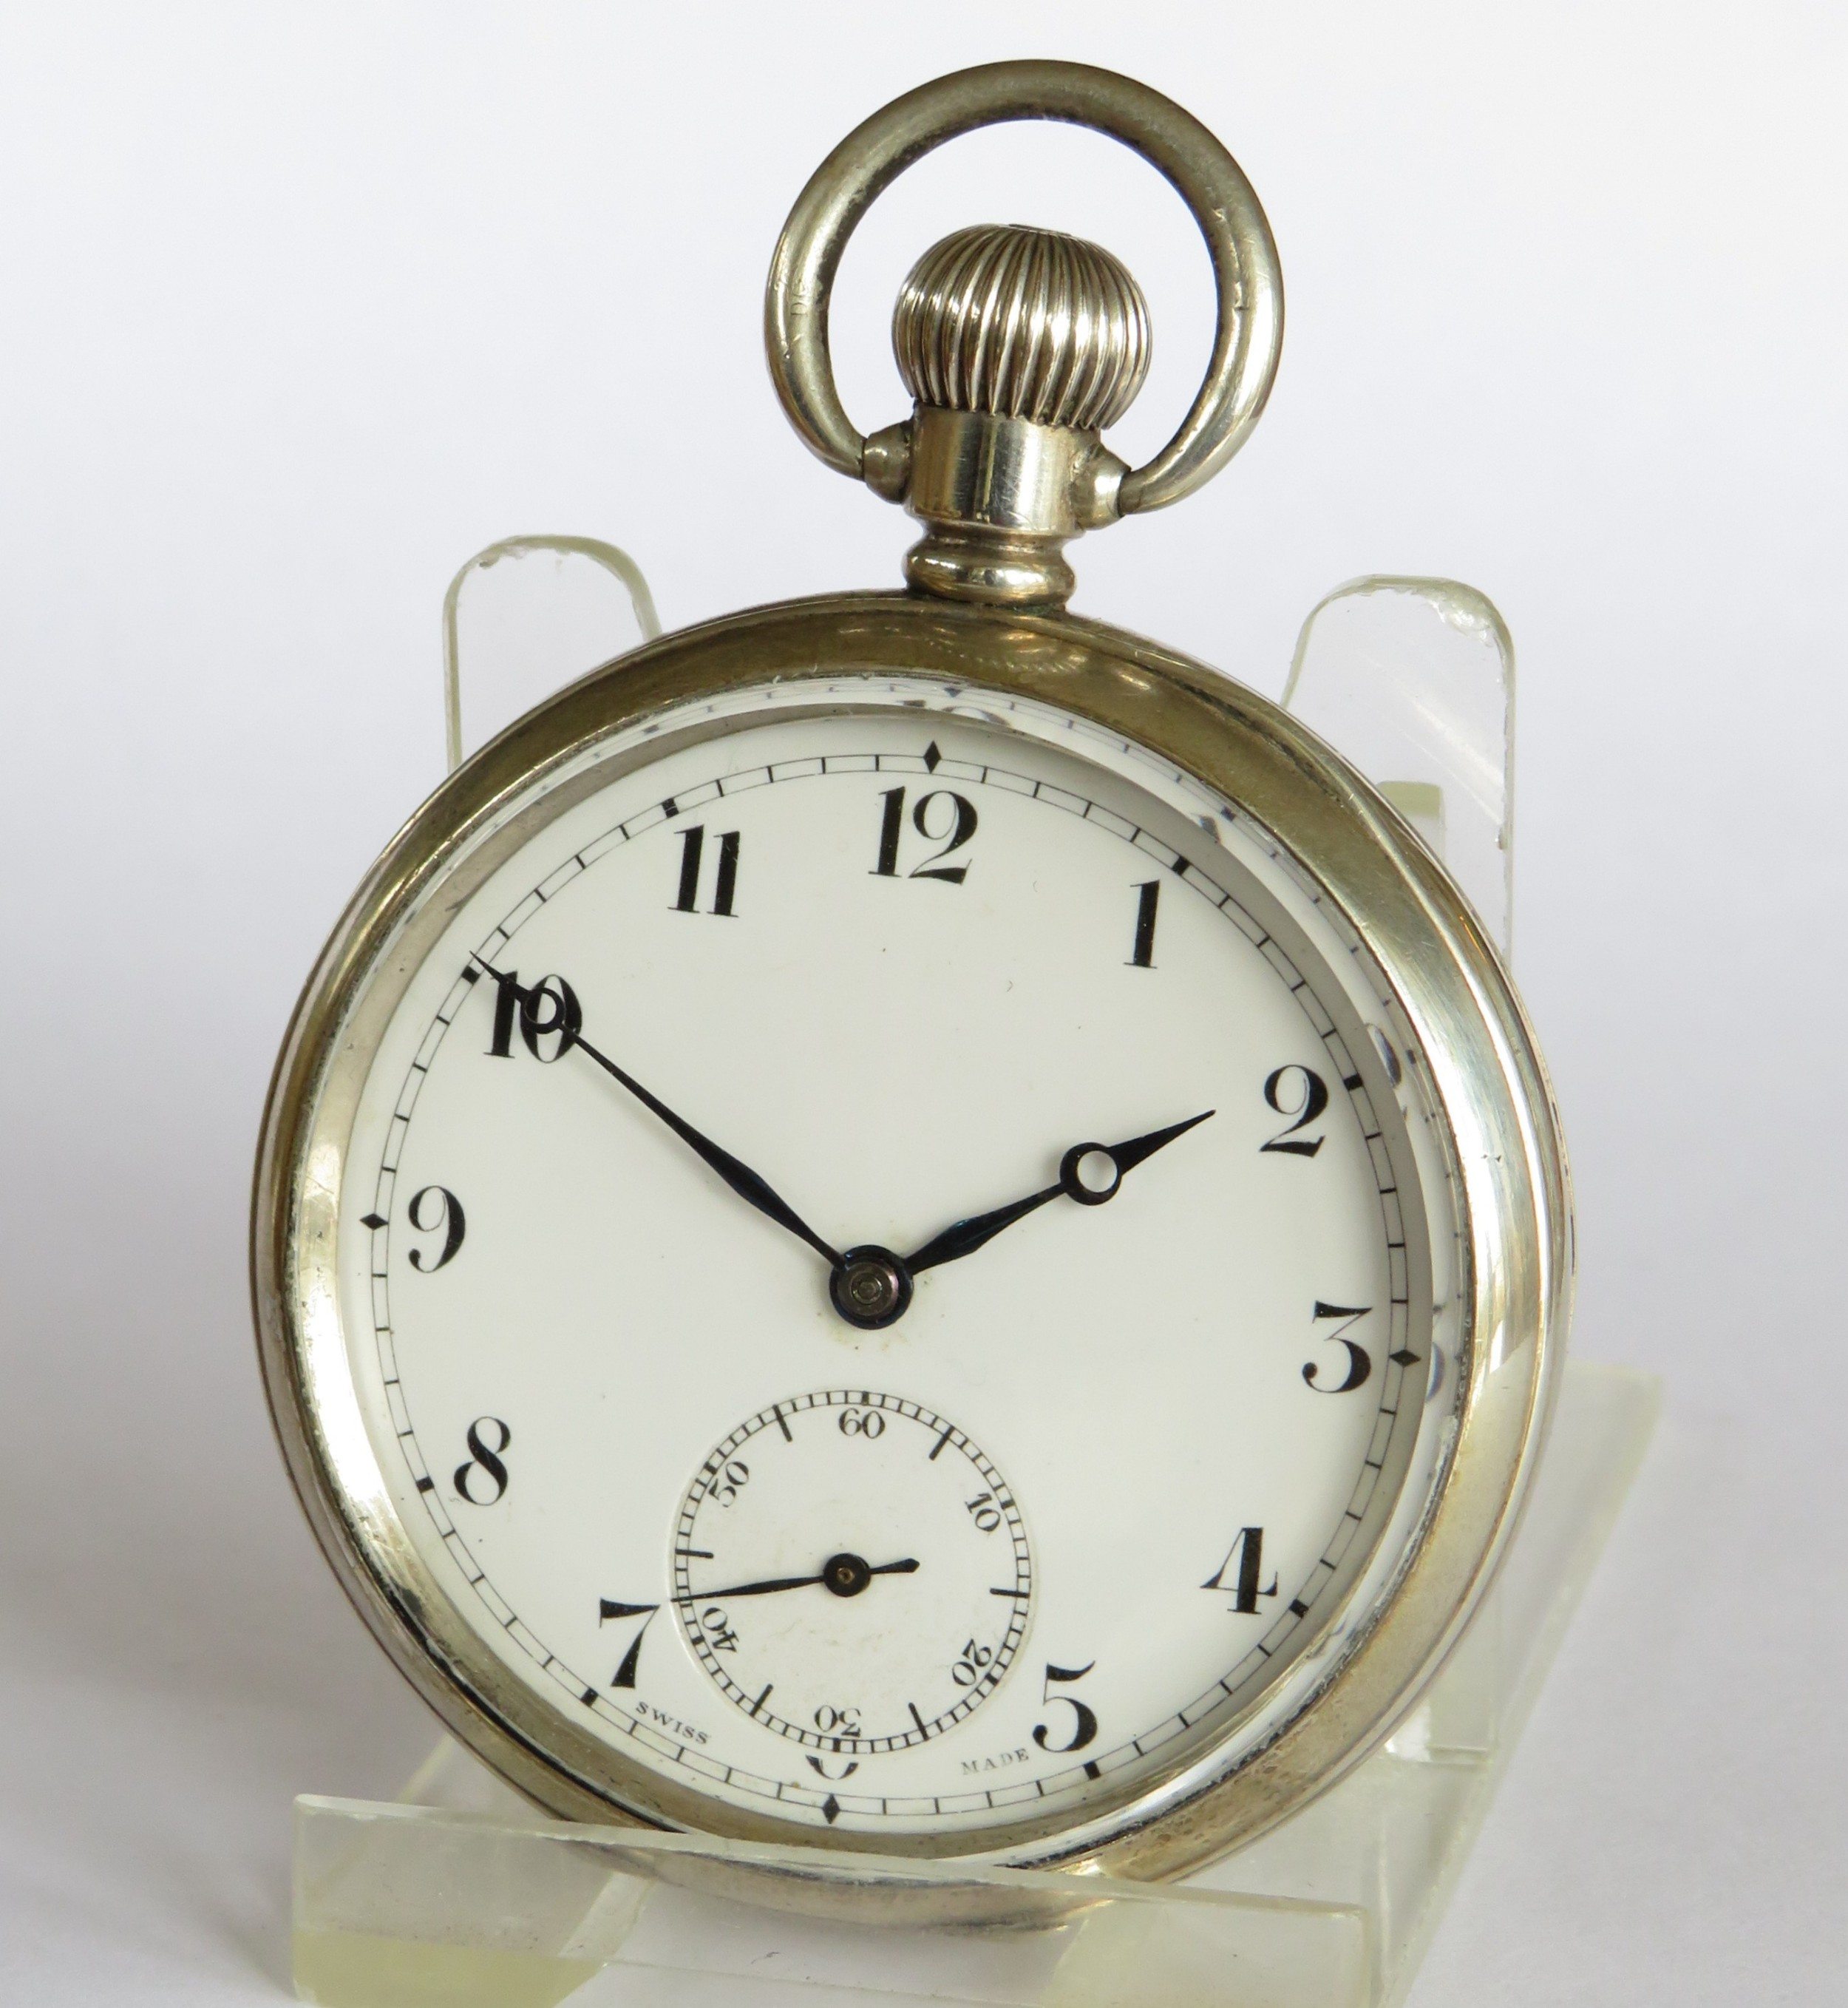 1930s silver cyma pocket watch